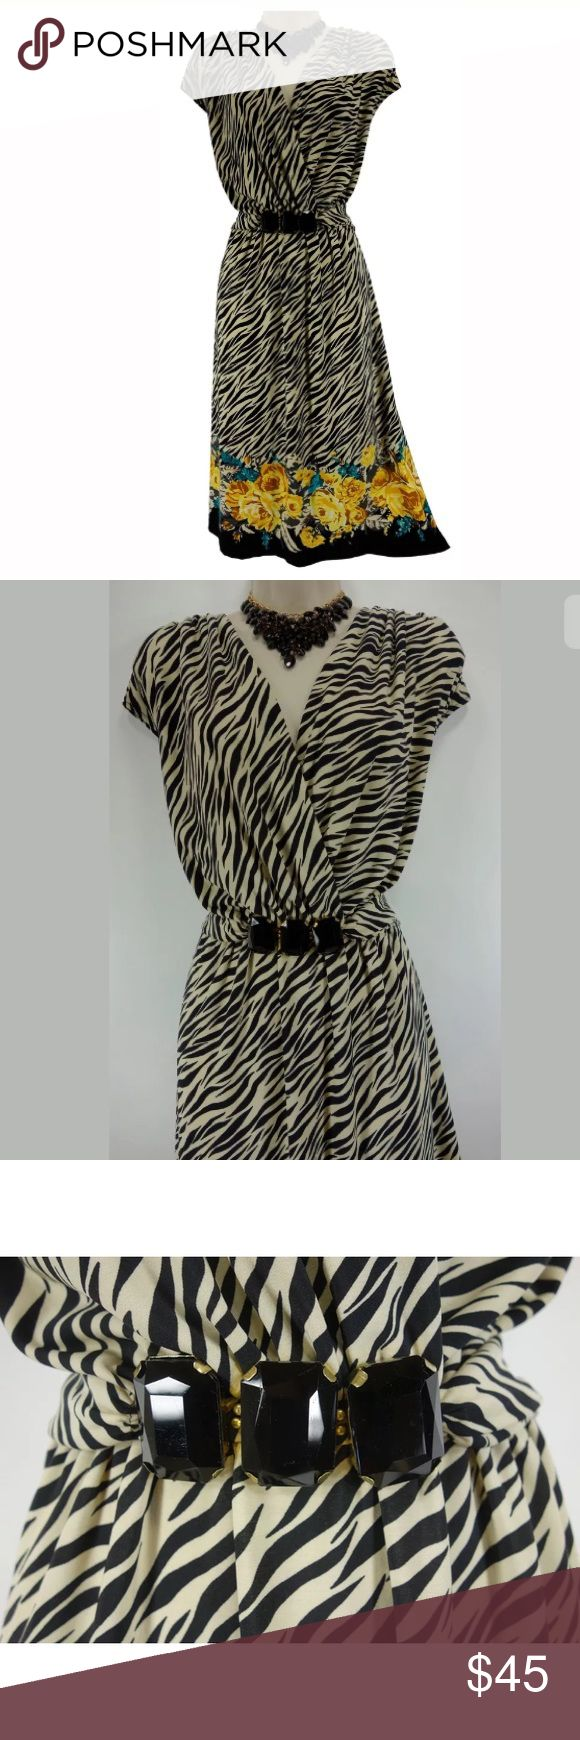 """16W 1X▪️GORGEOUS ZEBRA-FLORAL PRINT DRESS Plus Sz We LOVE this sexy, eye-catching, zebra-floral print summer dress!    Size: 16W Slip on/ slip off Surplice neckline  3 big, black jewels embellish the waist Eye-catching zebra-floral prints Stretchy, comfortable fabric  Measurements: Bust (armpit to armpit):  45"""" relaxed - stretches to 54"""" Waist: 38"""" relaxed - stretches to 46"""" Hips:  56"""" relaxed Length: 40.5"""" (top of shoulder to bottom hem)  Condition:  PRISTINE CONDITION! Fabric Content…"""